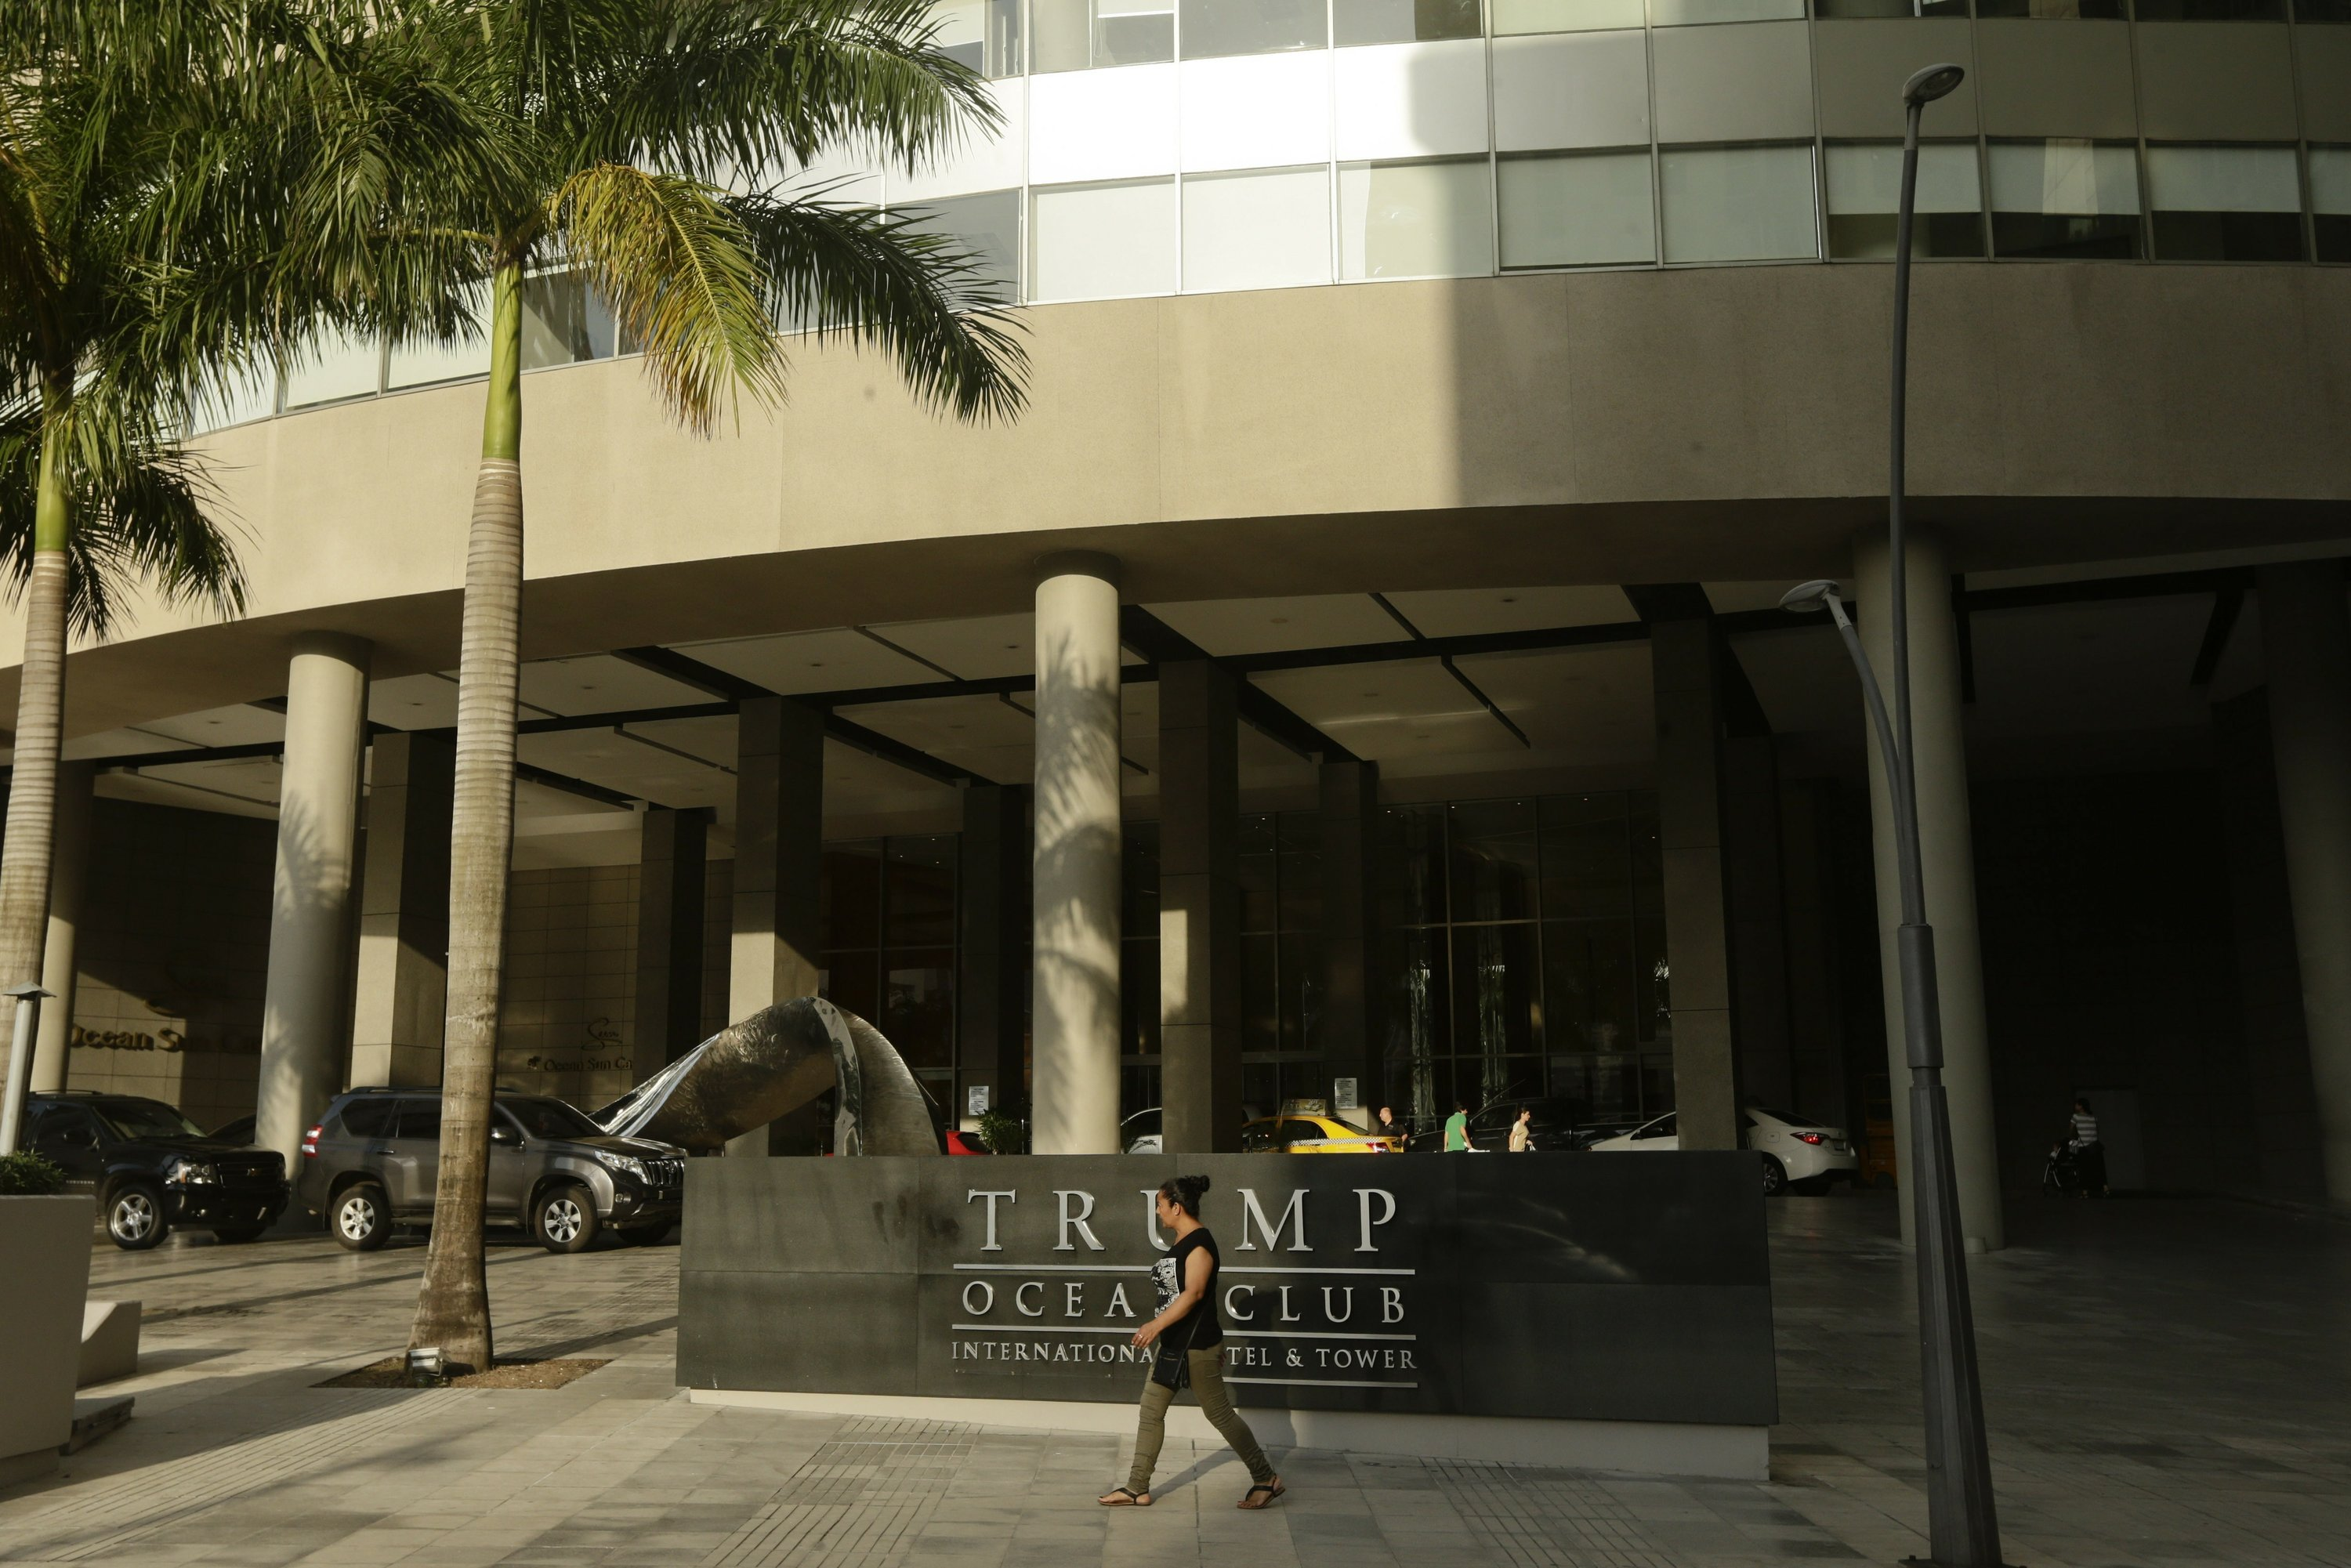 Trump officials fight eviction from Panama hotel they manage